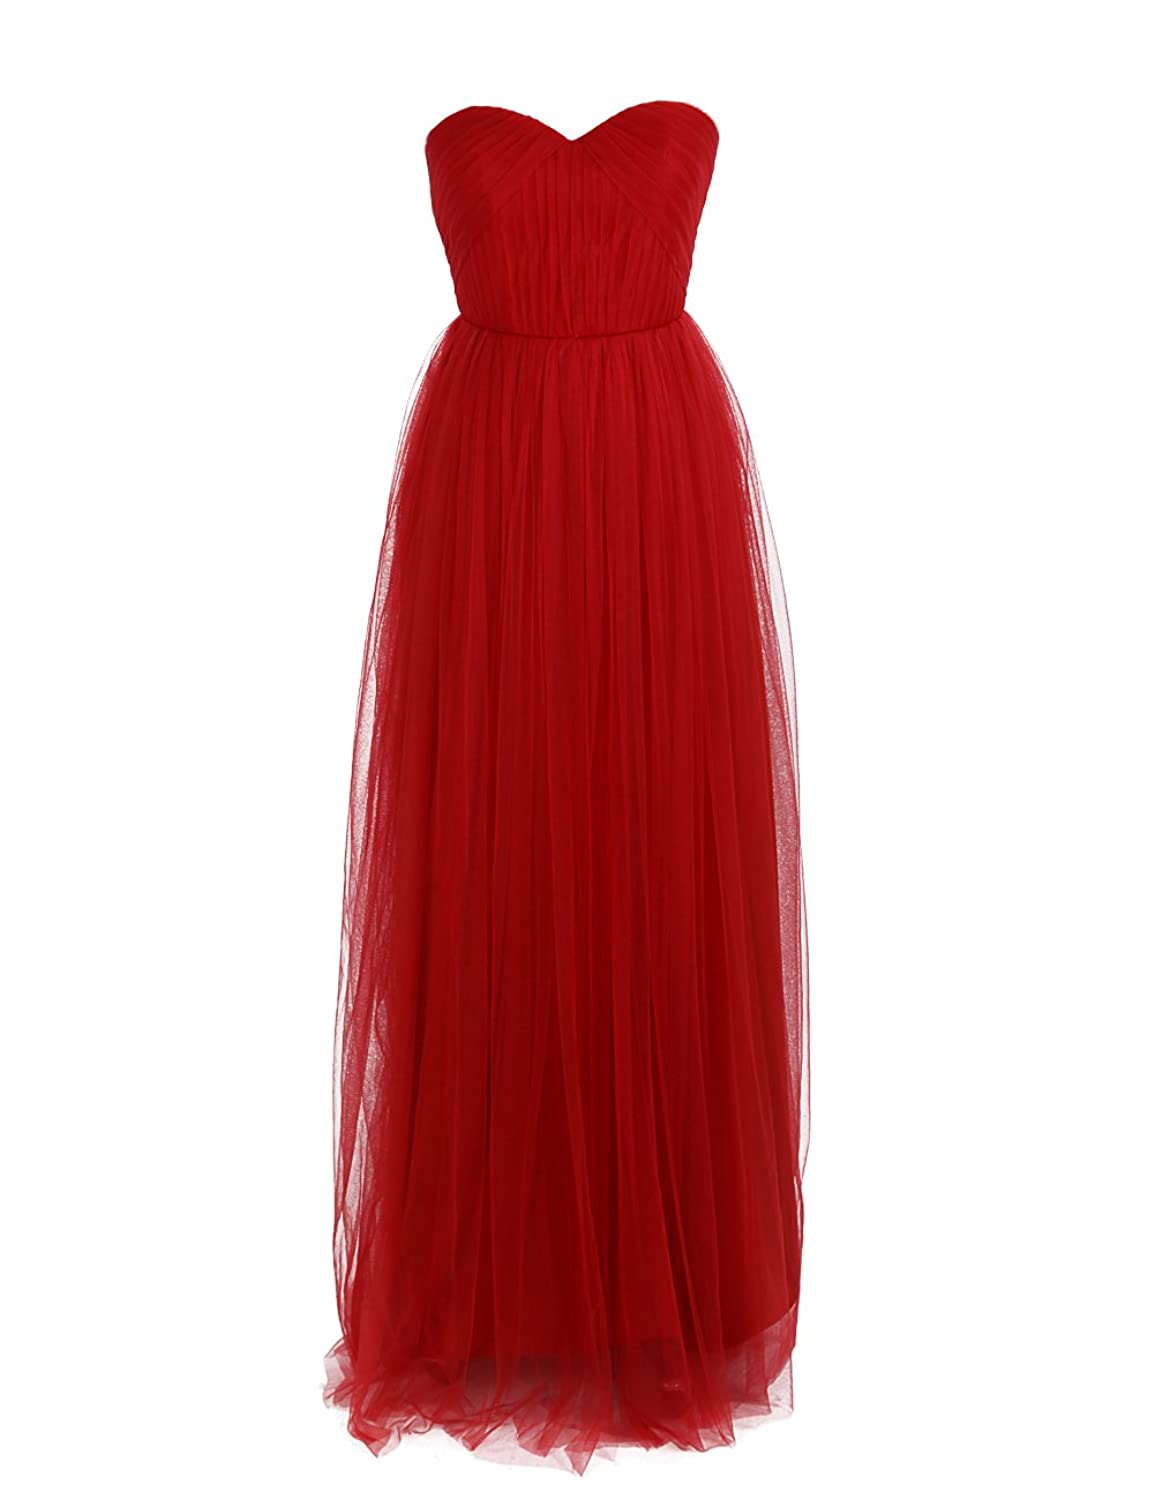 Dressystar Empire Tulle Bridesmaid Dresses Long Size 16 Red